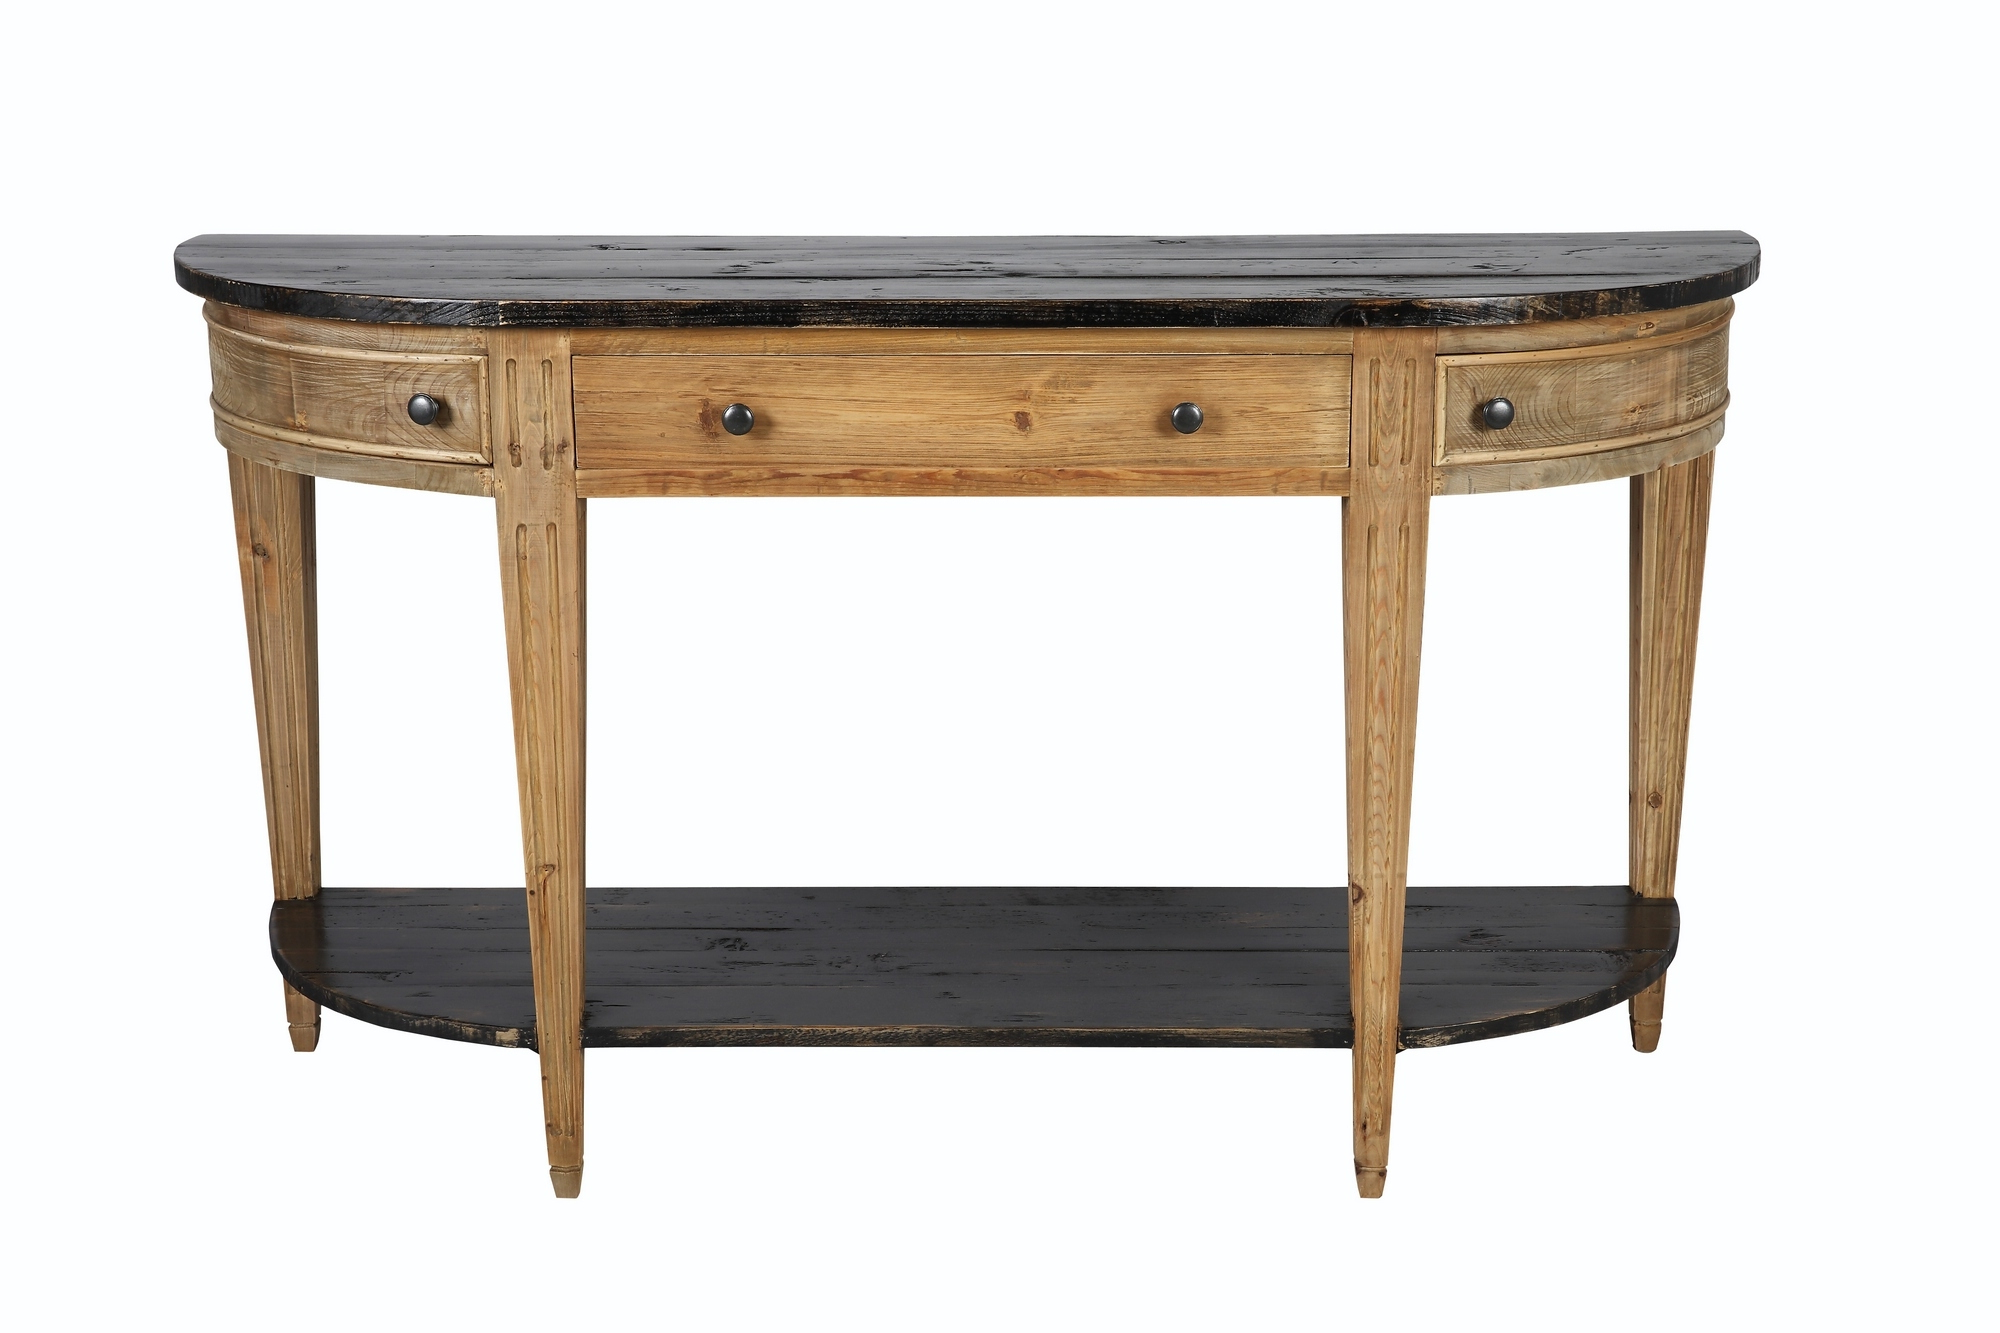 Juliet Console Table (kj 1002 24)moes Home Regarding Balboa Carved Console Tables (View 12 of 20)